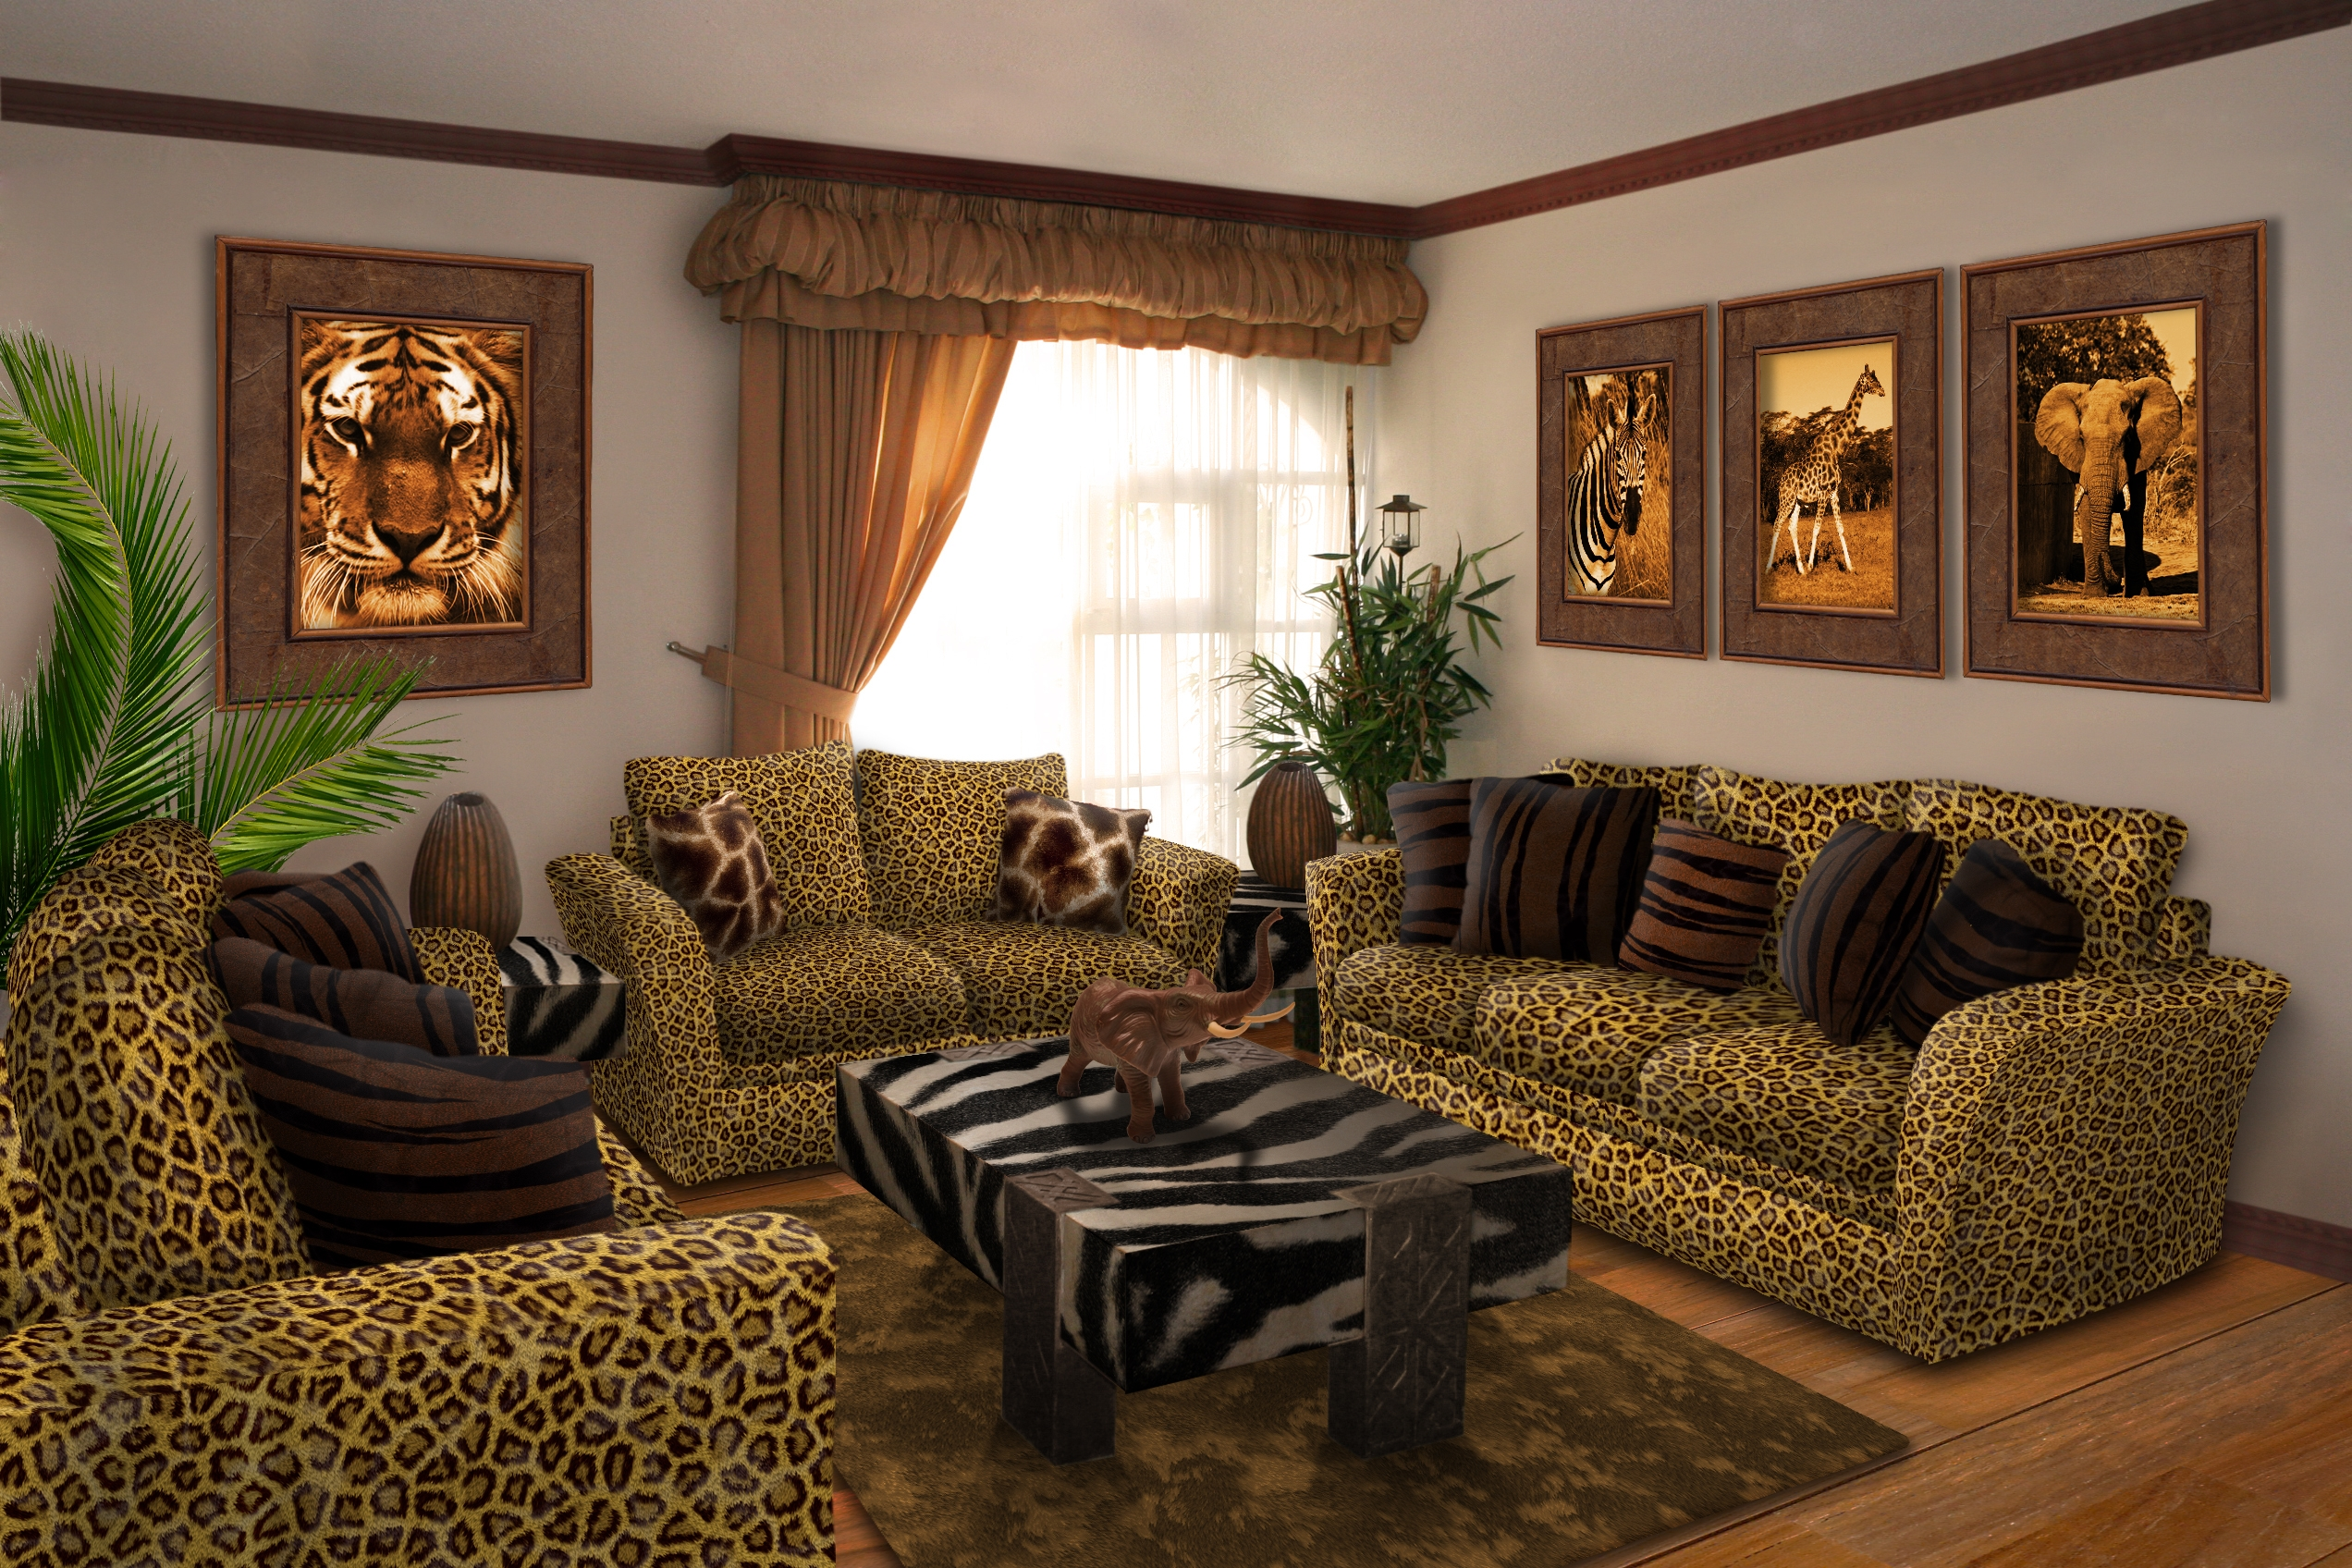 safari living room picture by andrej2249 for interior transform photoshop contest